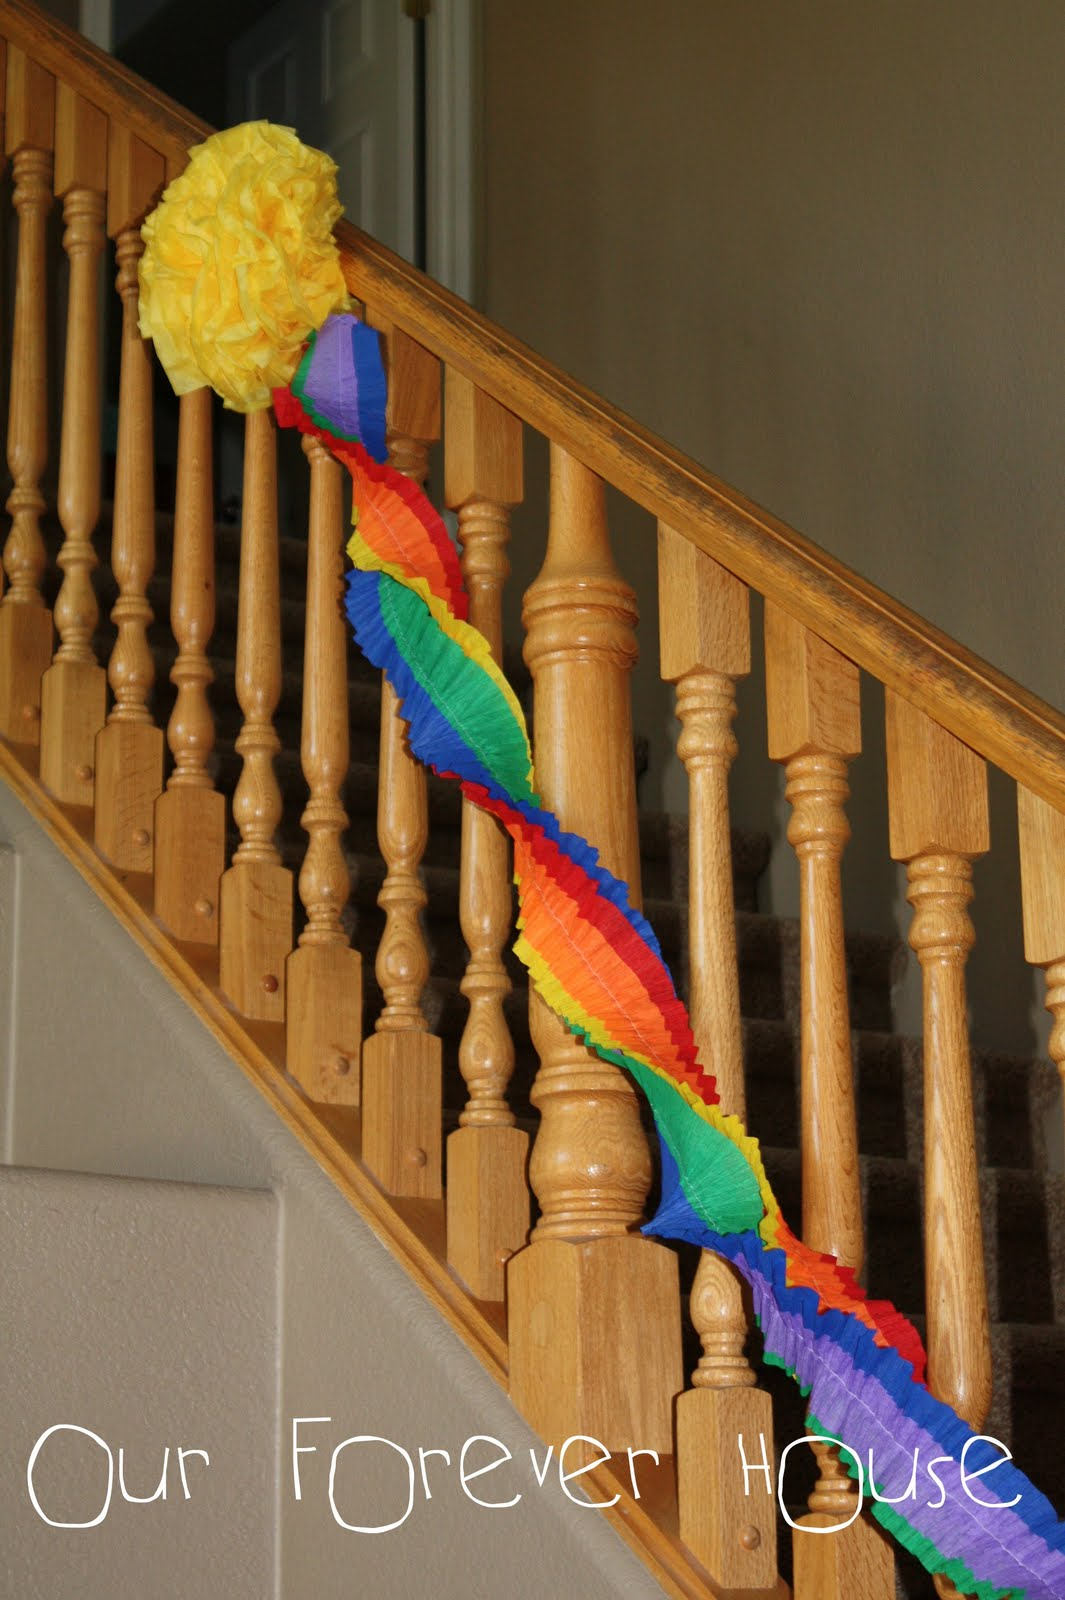 Our forever house rainbow birthday party sneak peek - Birthday decorations with crepe paper ...